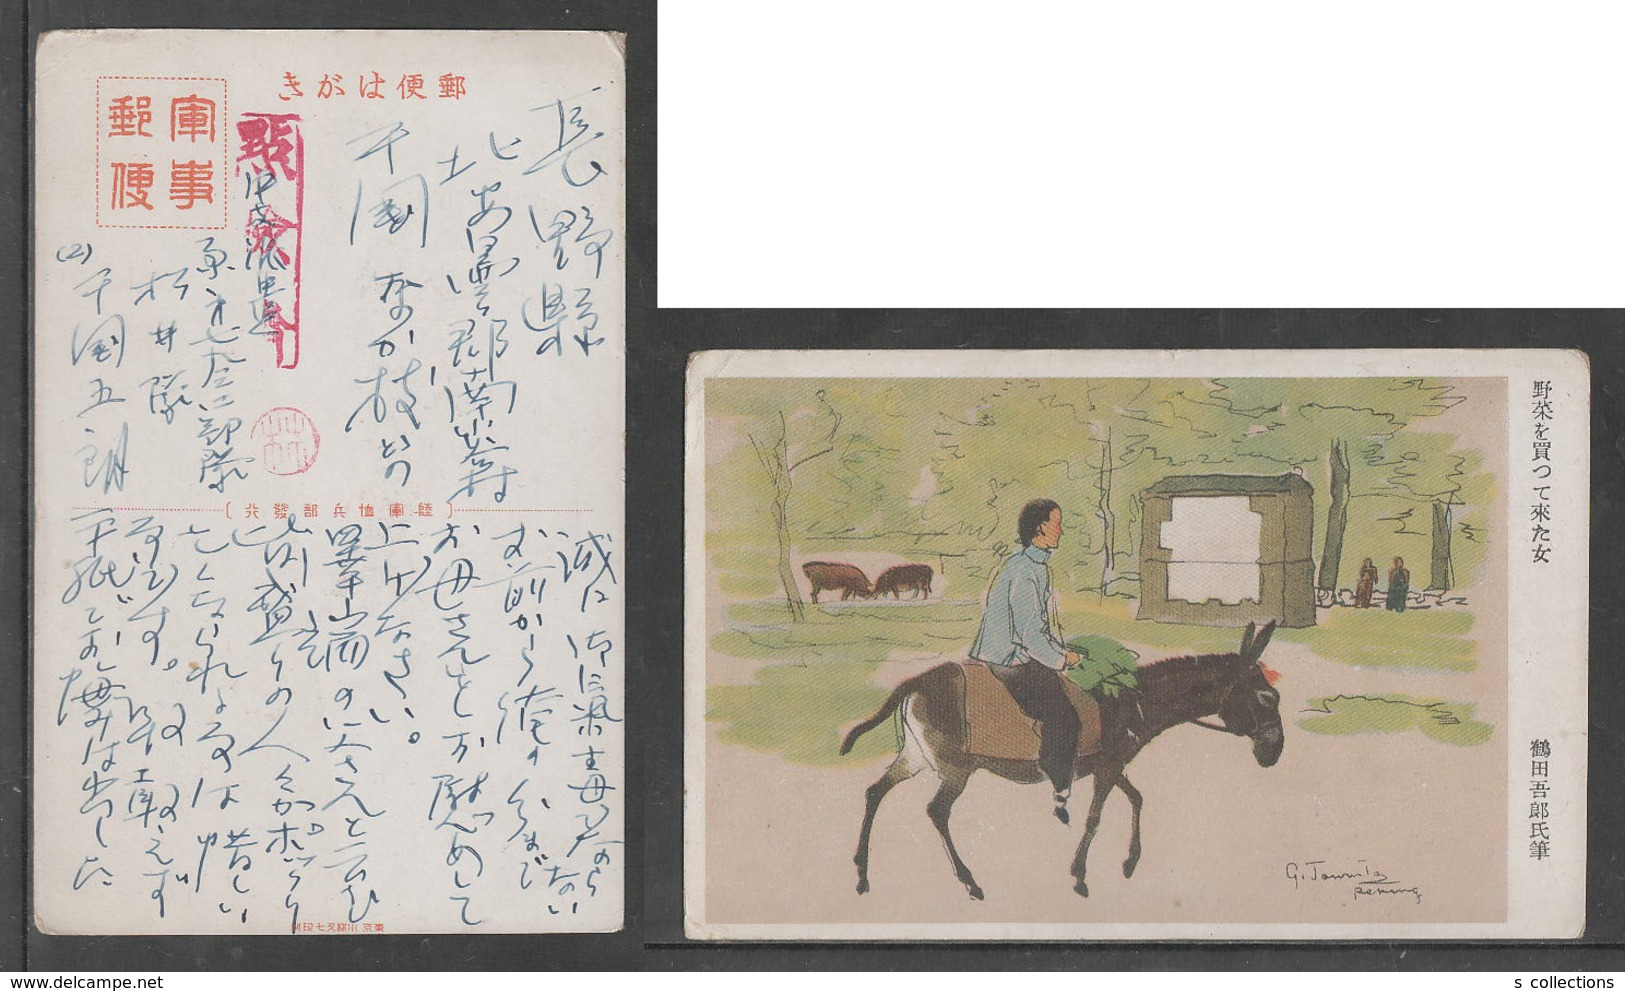 JAPAN WWII Military Bought Vegetables Picture Postcard CENTRAL CHINA HARA 7932th Force CHINE To JAPON GIAPPONE - 1943-45 Shanghai & Nanjing